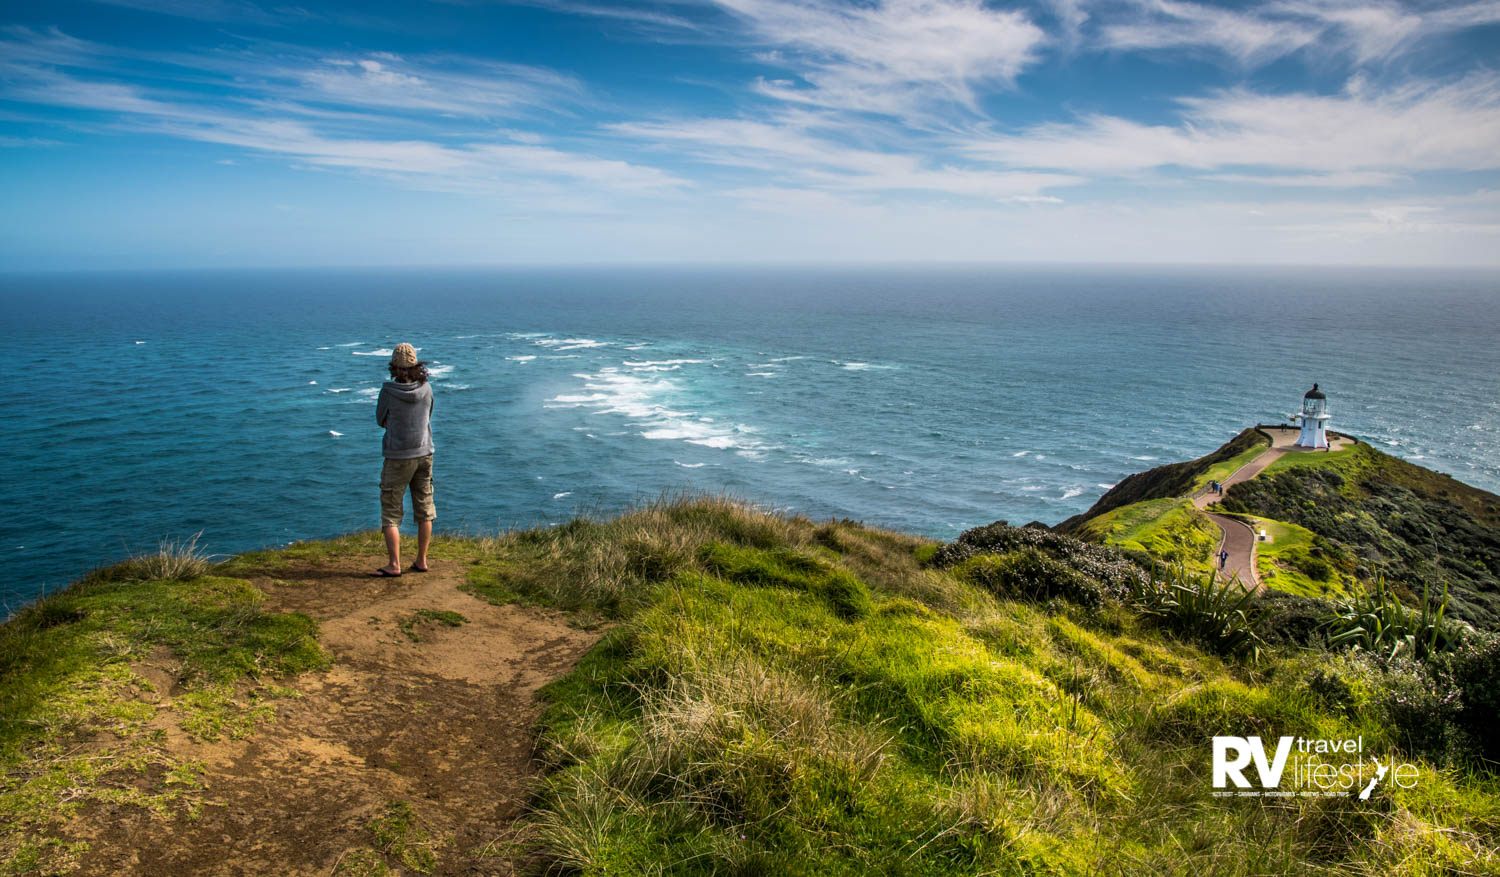 Justine awed by the meeting of two mighty oceans at Cape Reinga, Far North